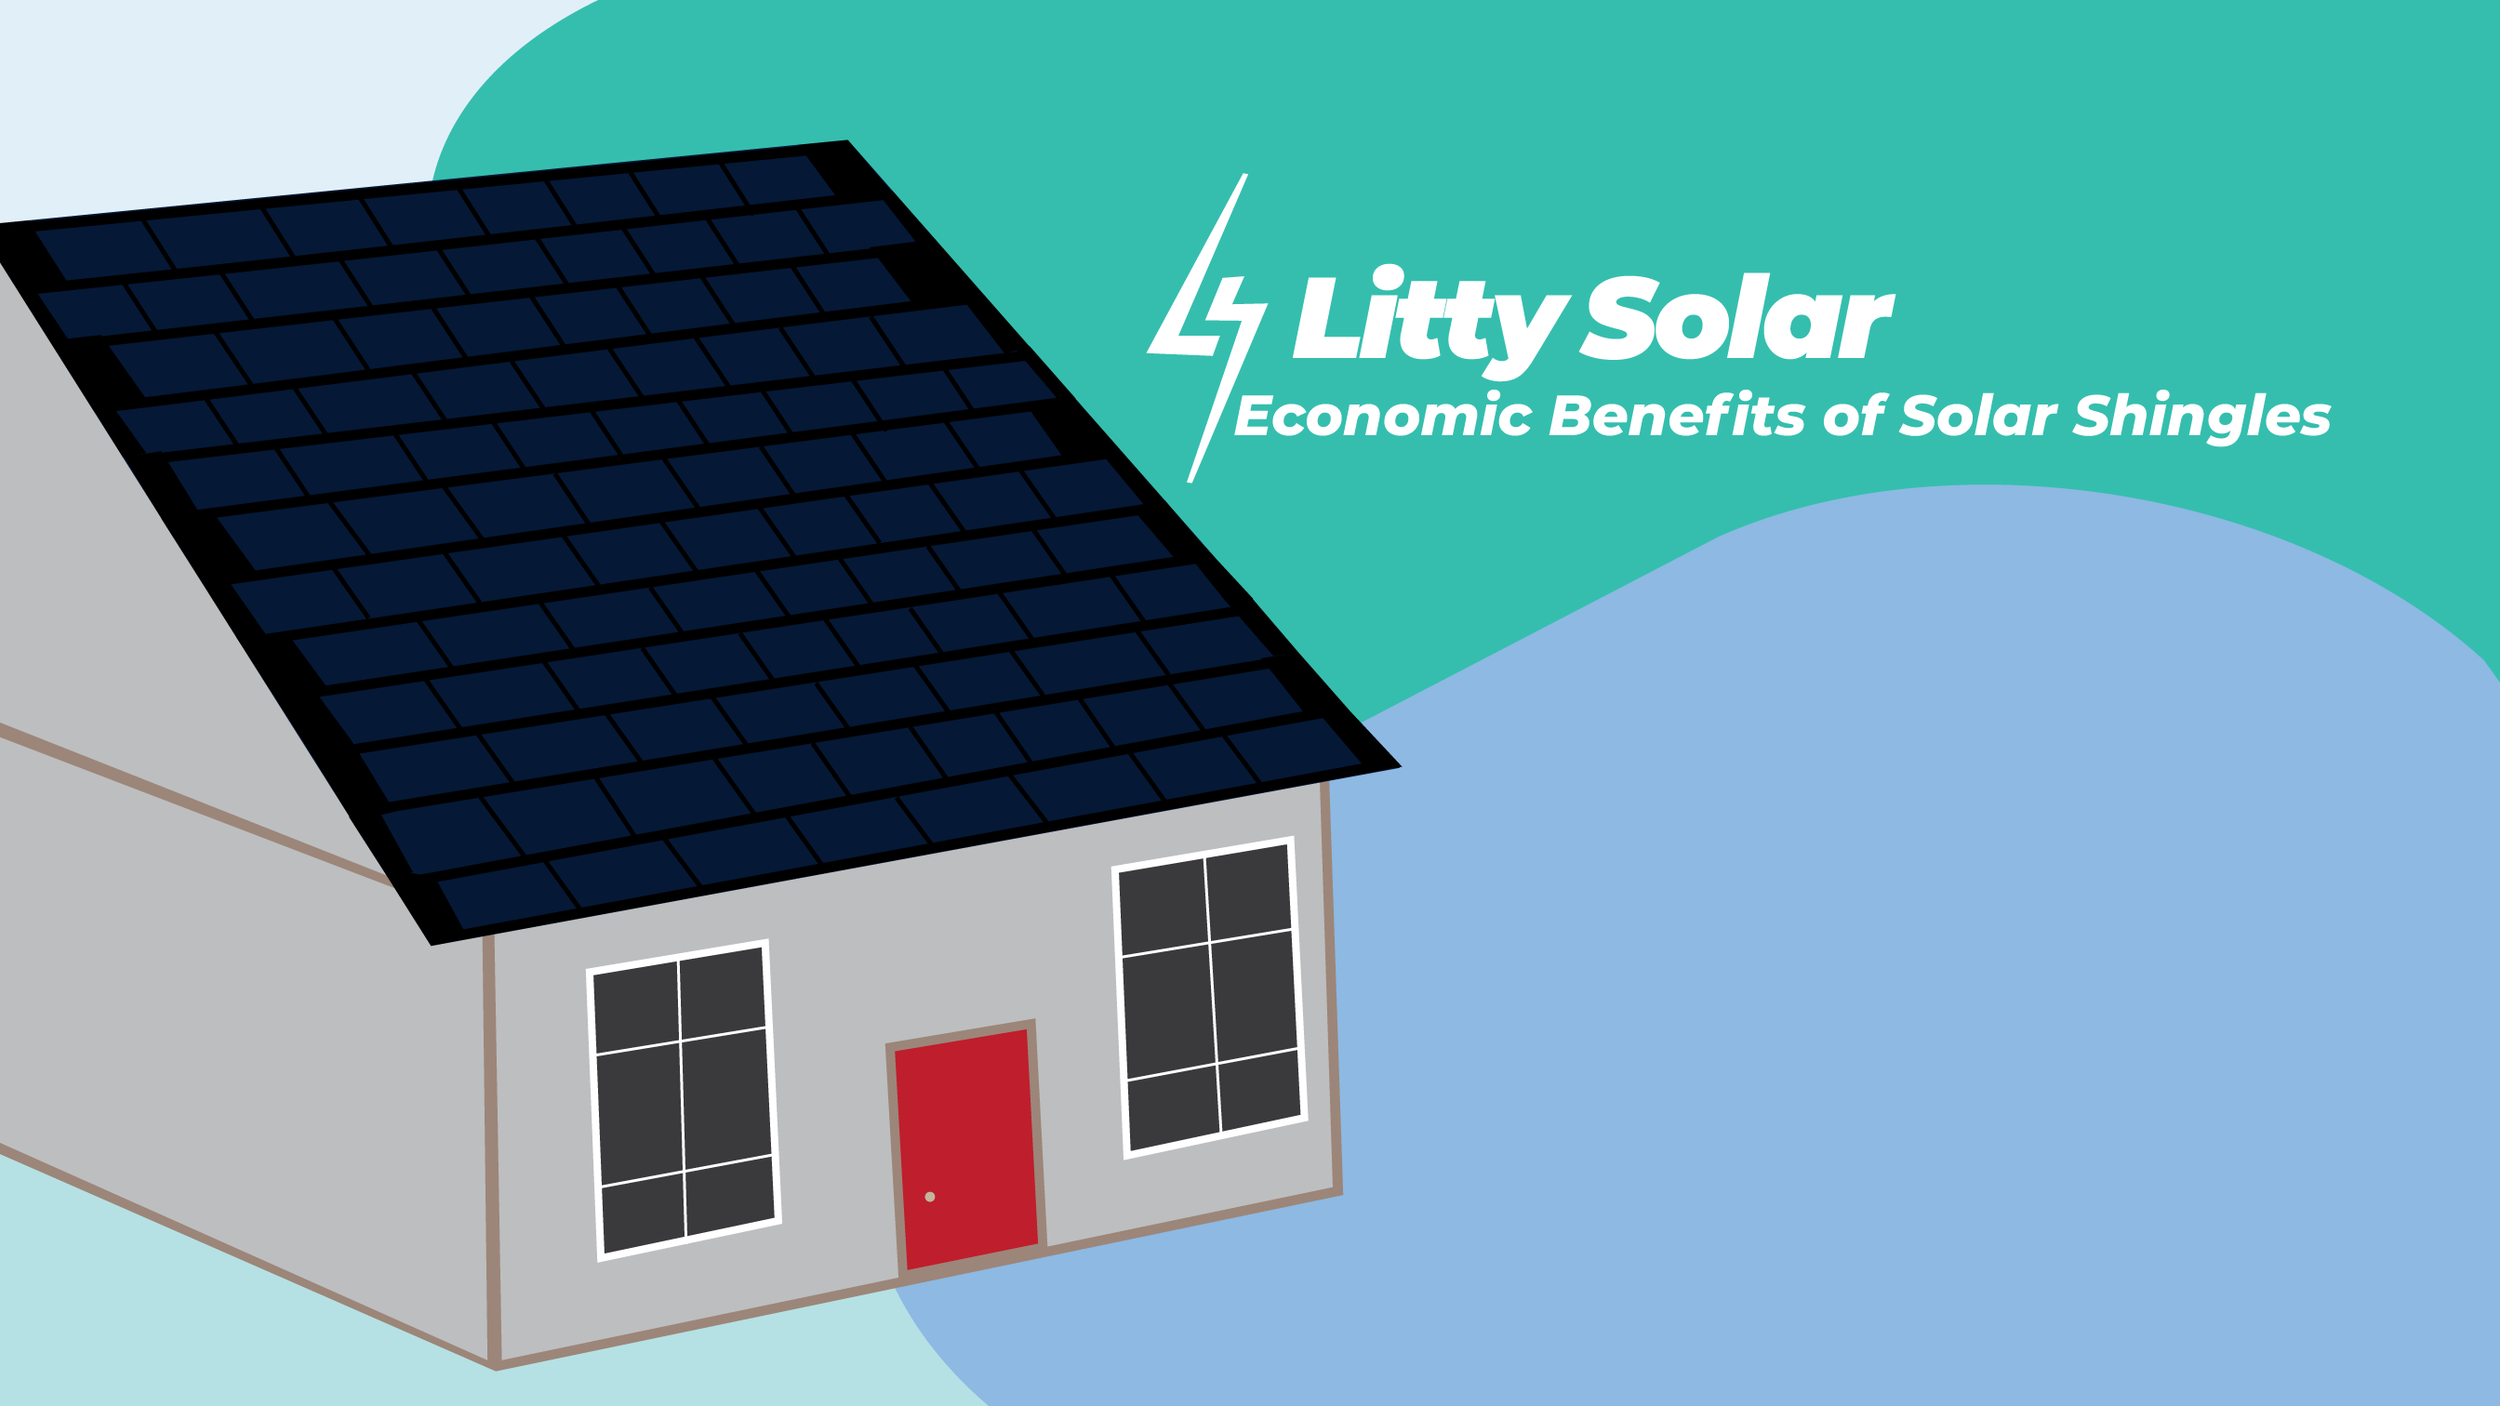 economic-benefits-solar-shingles-article.png